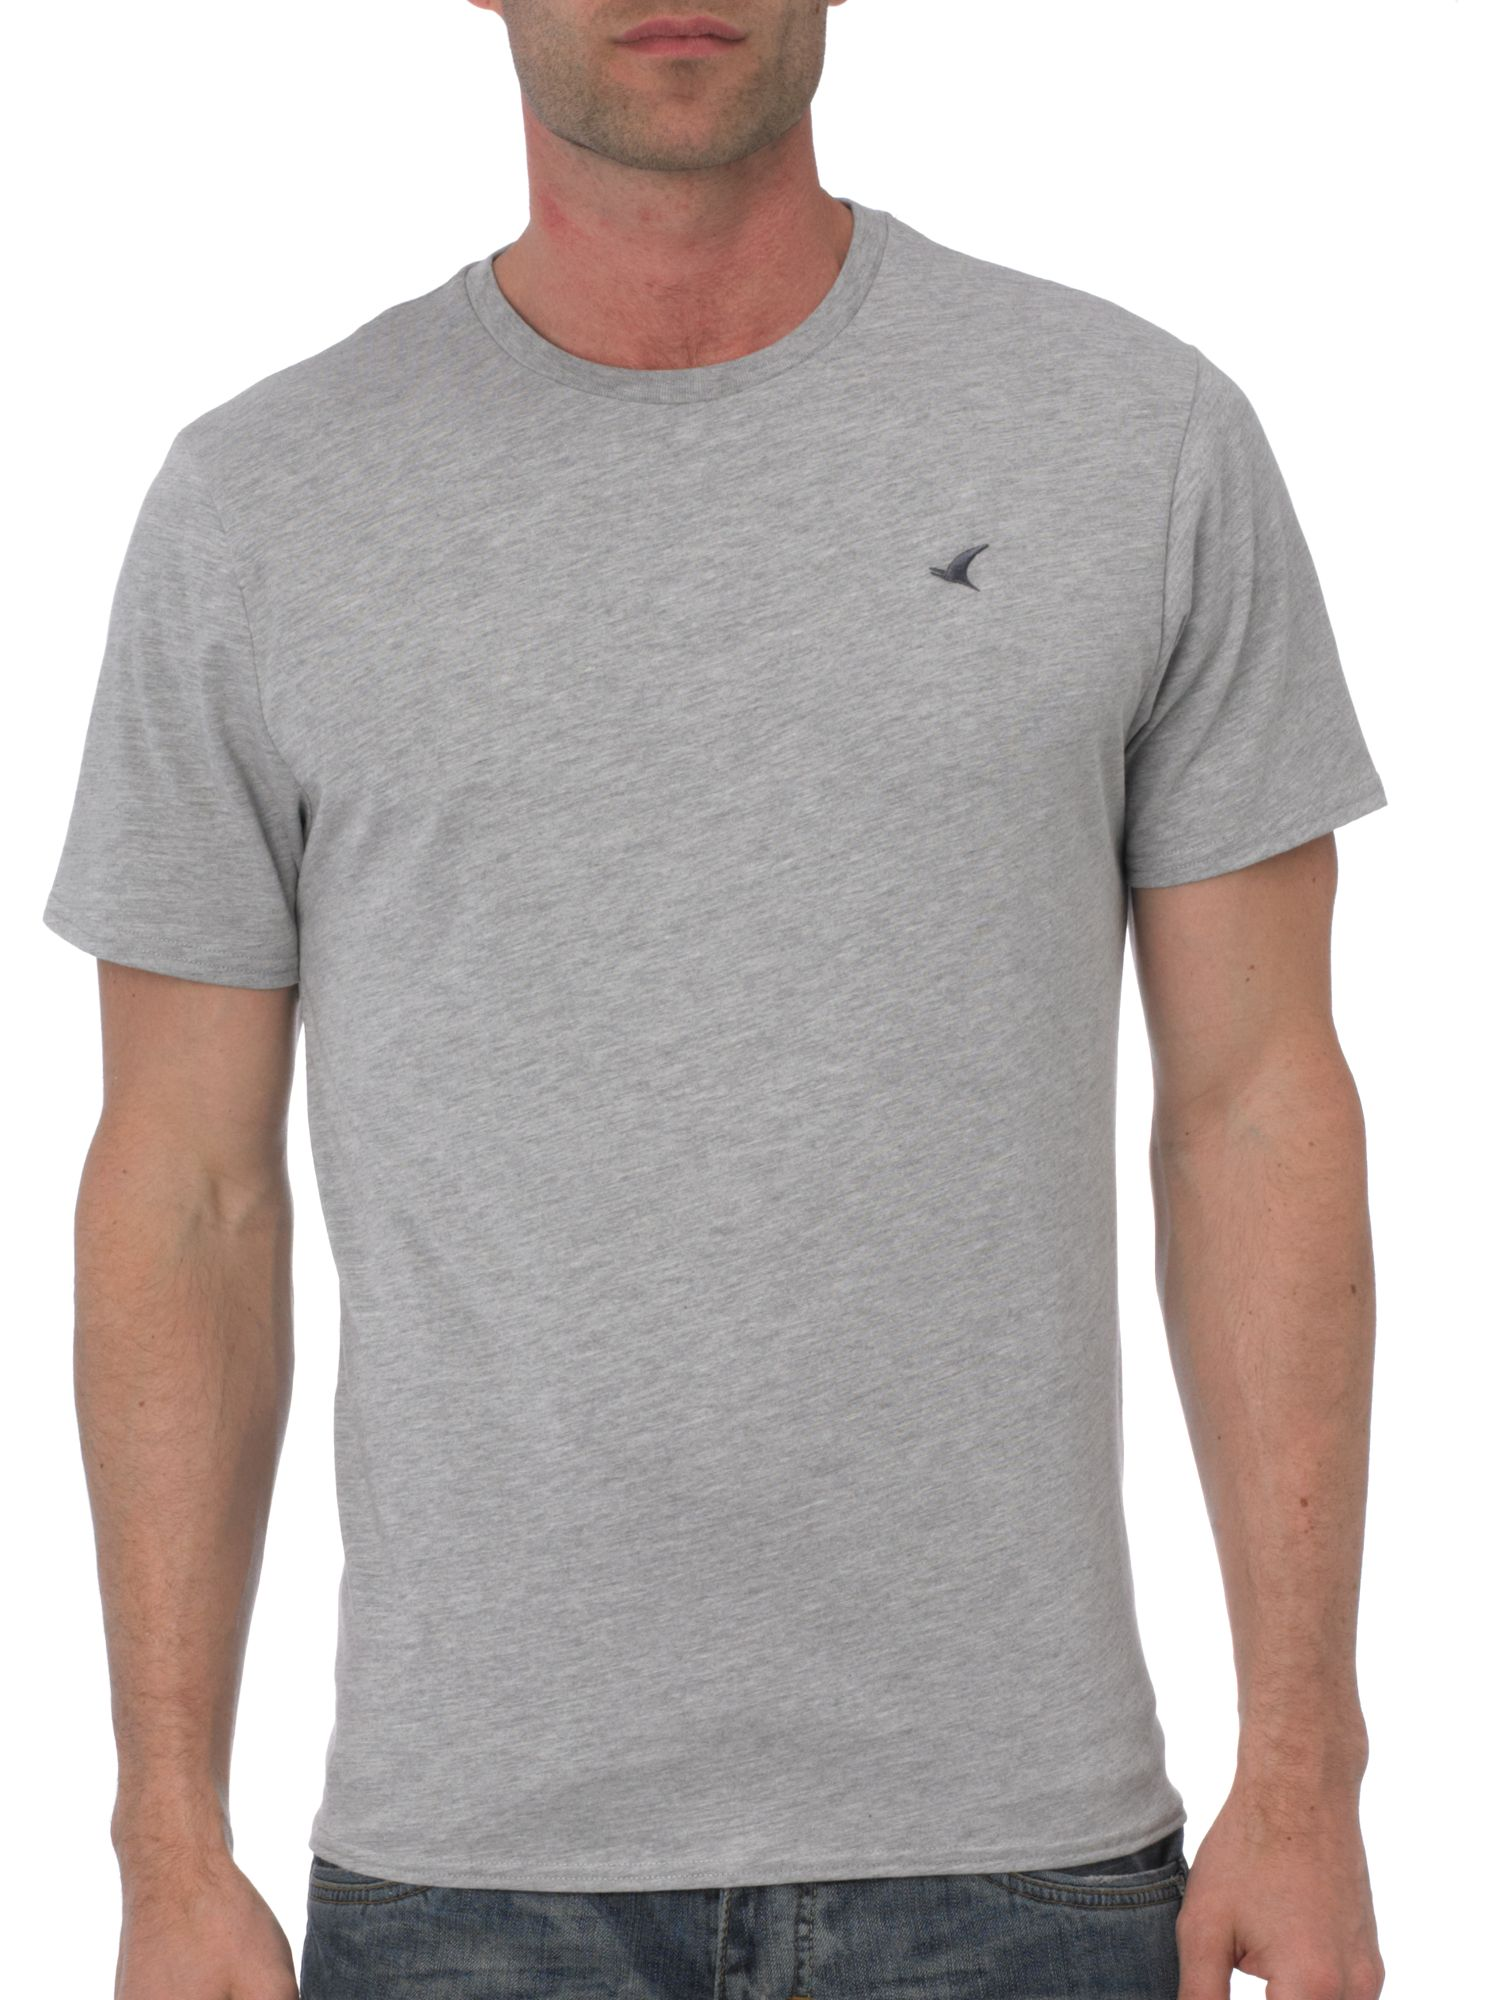 Howick logo nightwear t shirt grey marl review compare for Grey marl t shirt